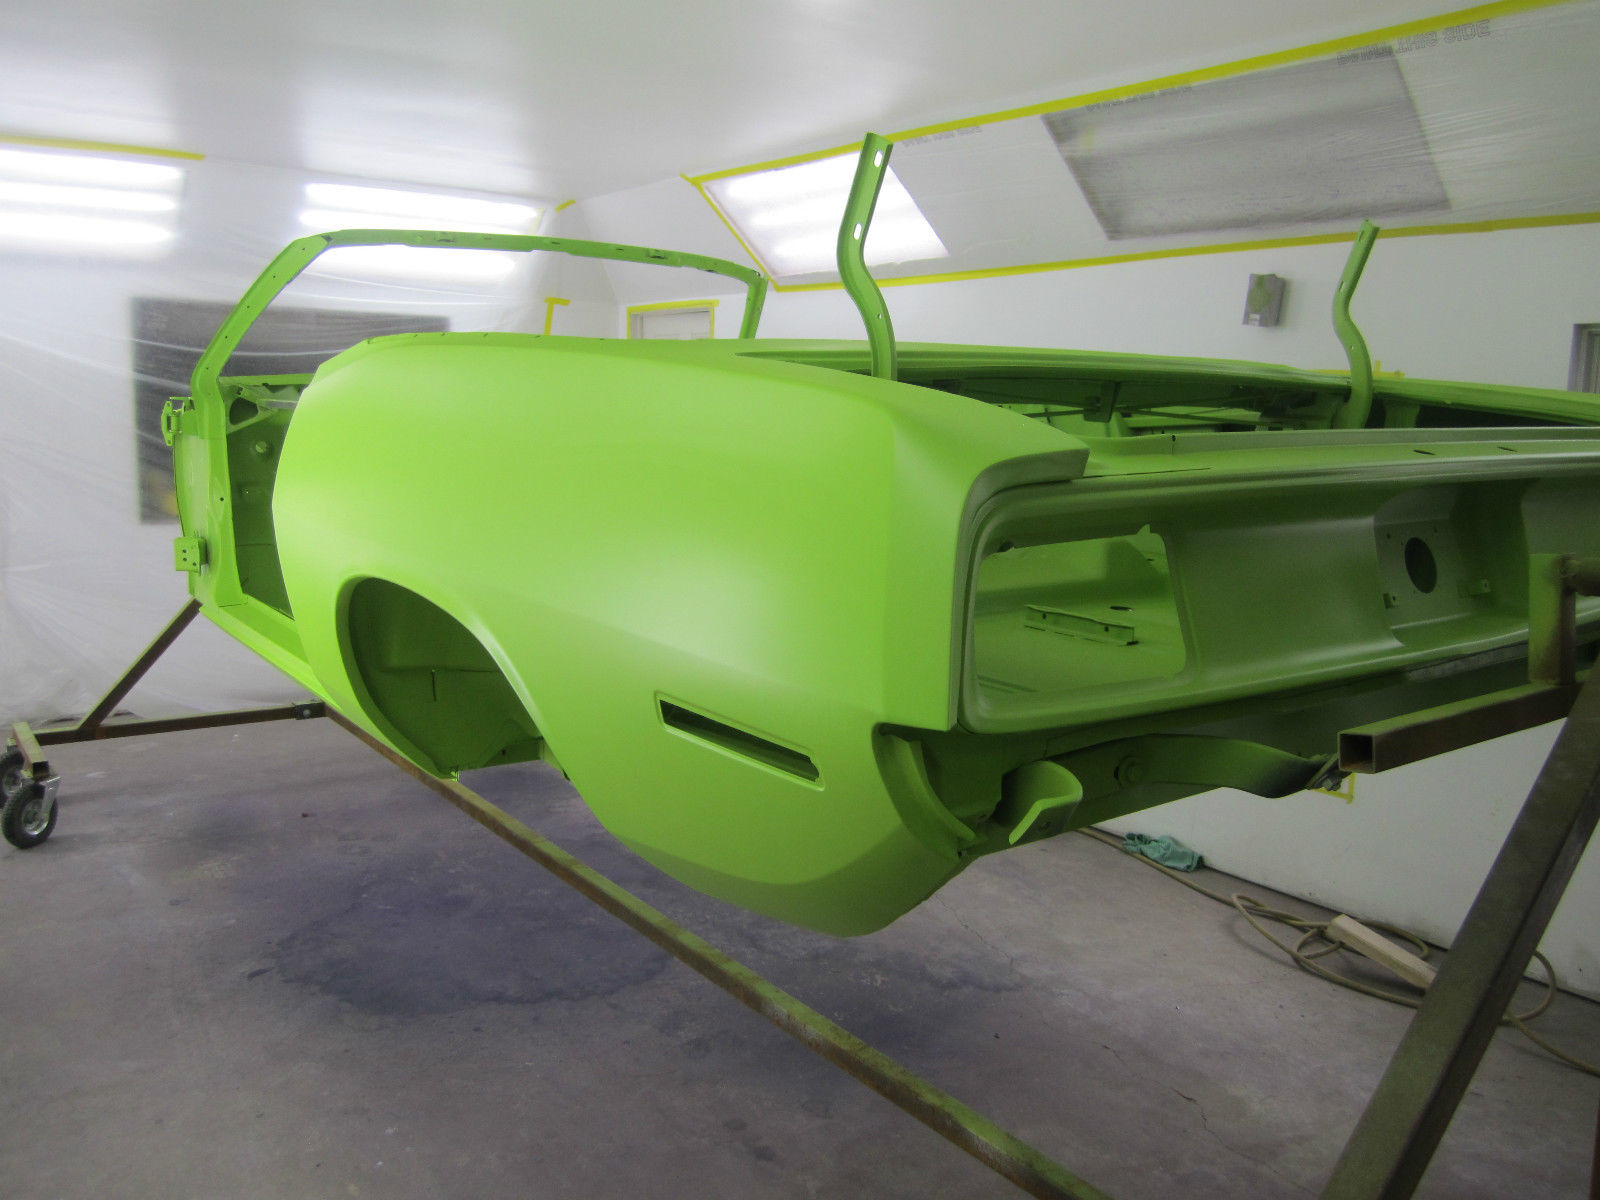 1970 Barracuda Convertible Factory Limelite Green Grand Coupe